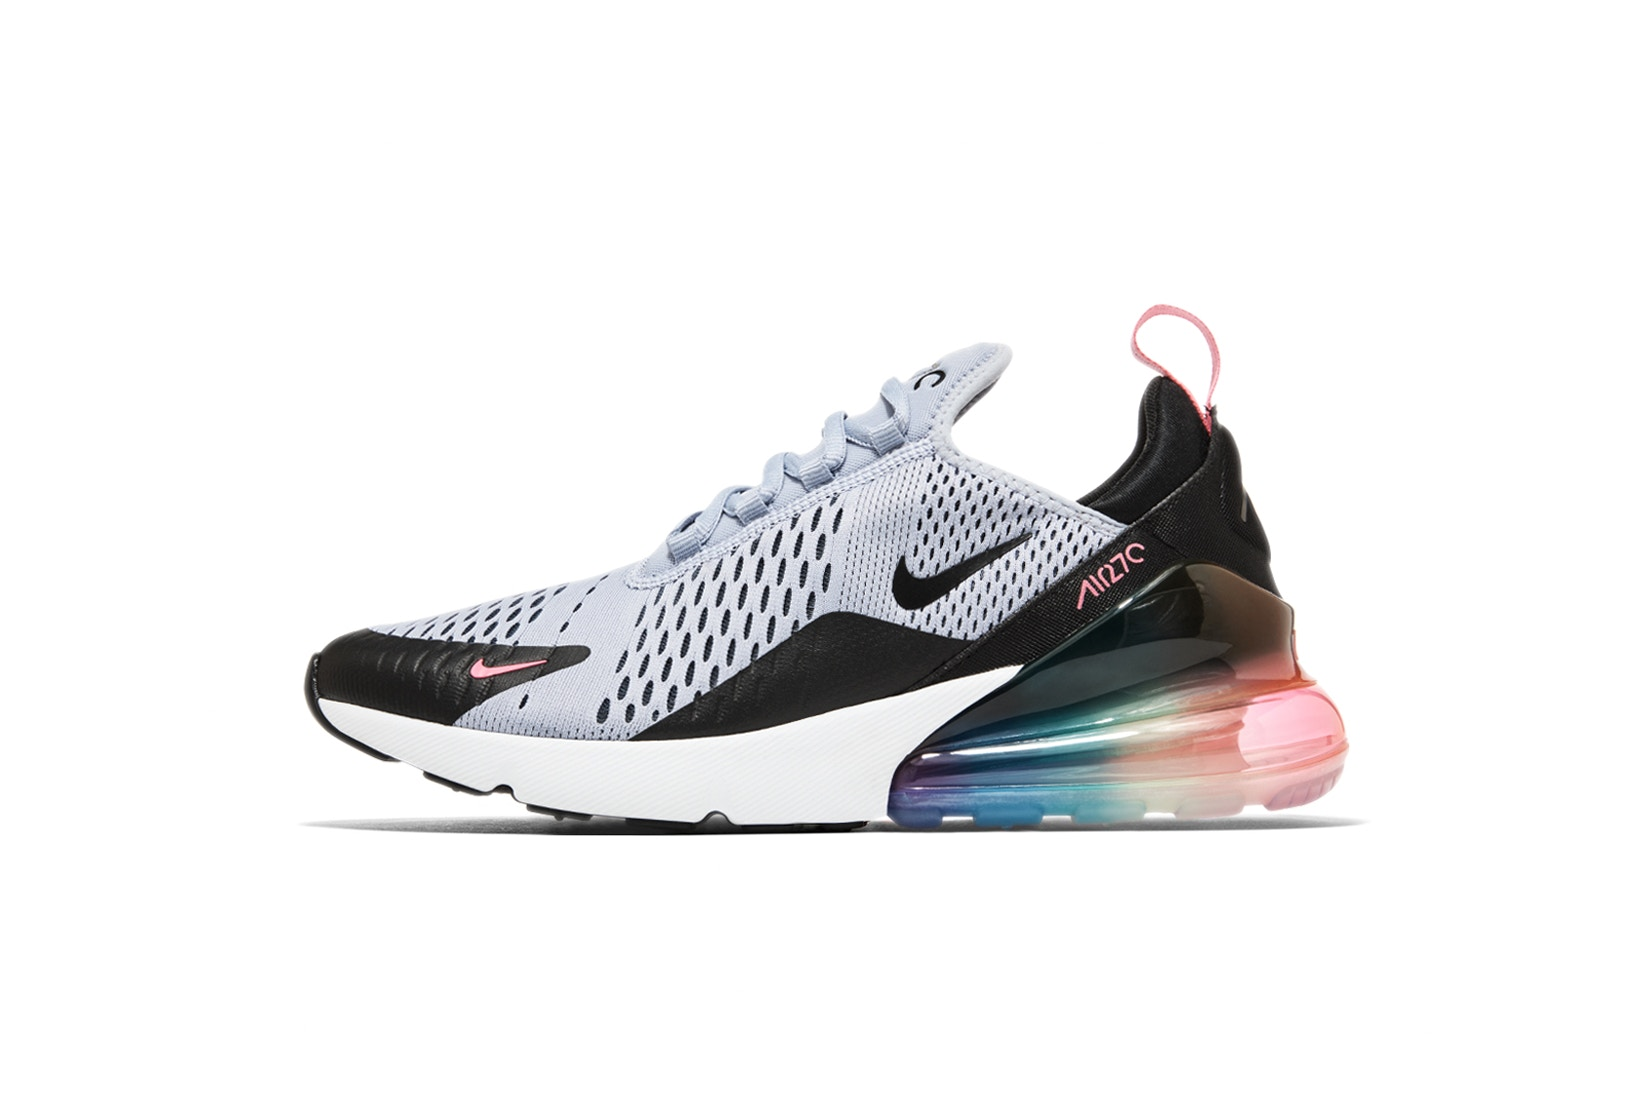 153ab234bc2229 ... promo code for nike air max 270 5a479 3fd3d